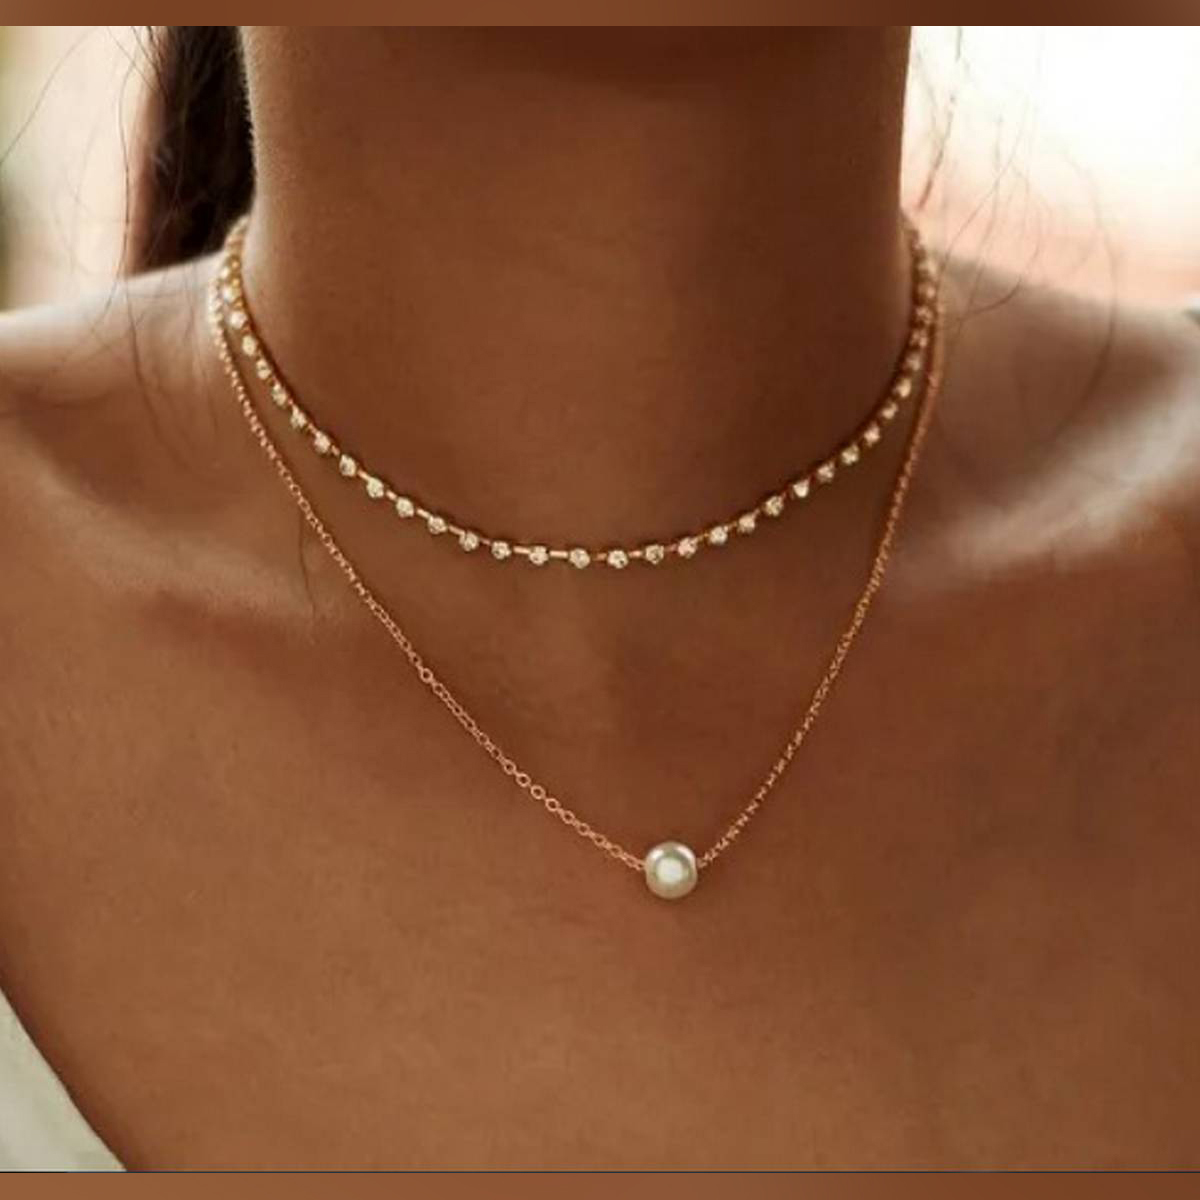 Trendy Multi-layer Pearl Pendant Charm Choker Chain Necklace For Girls